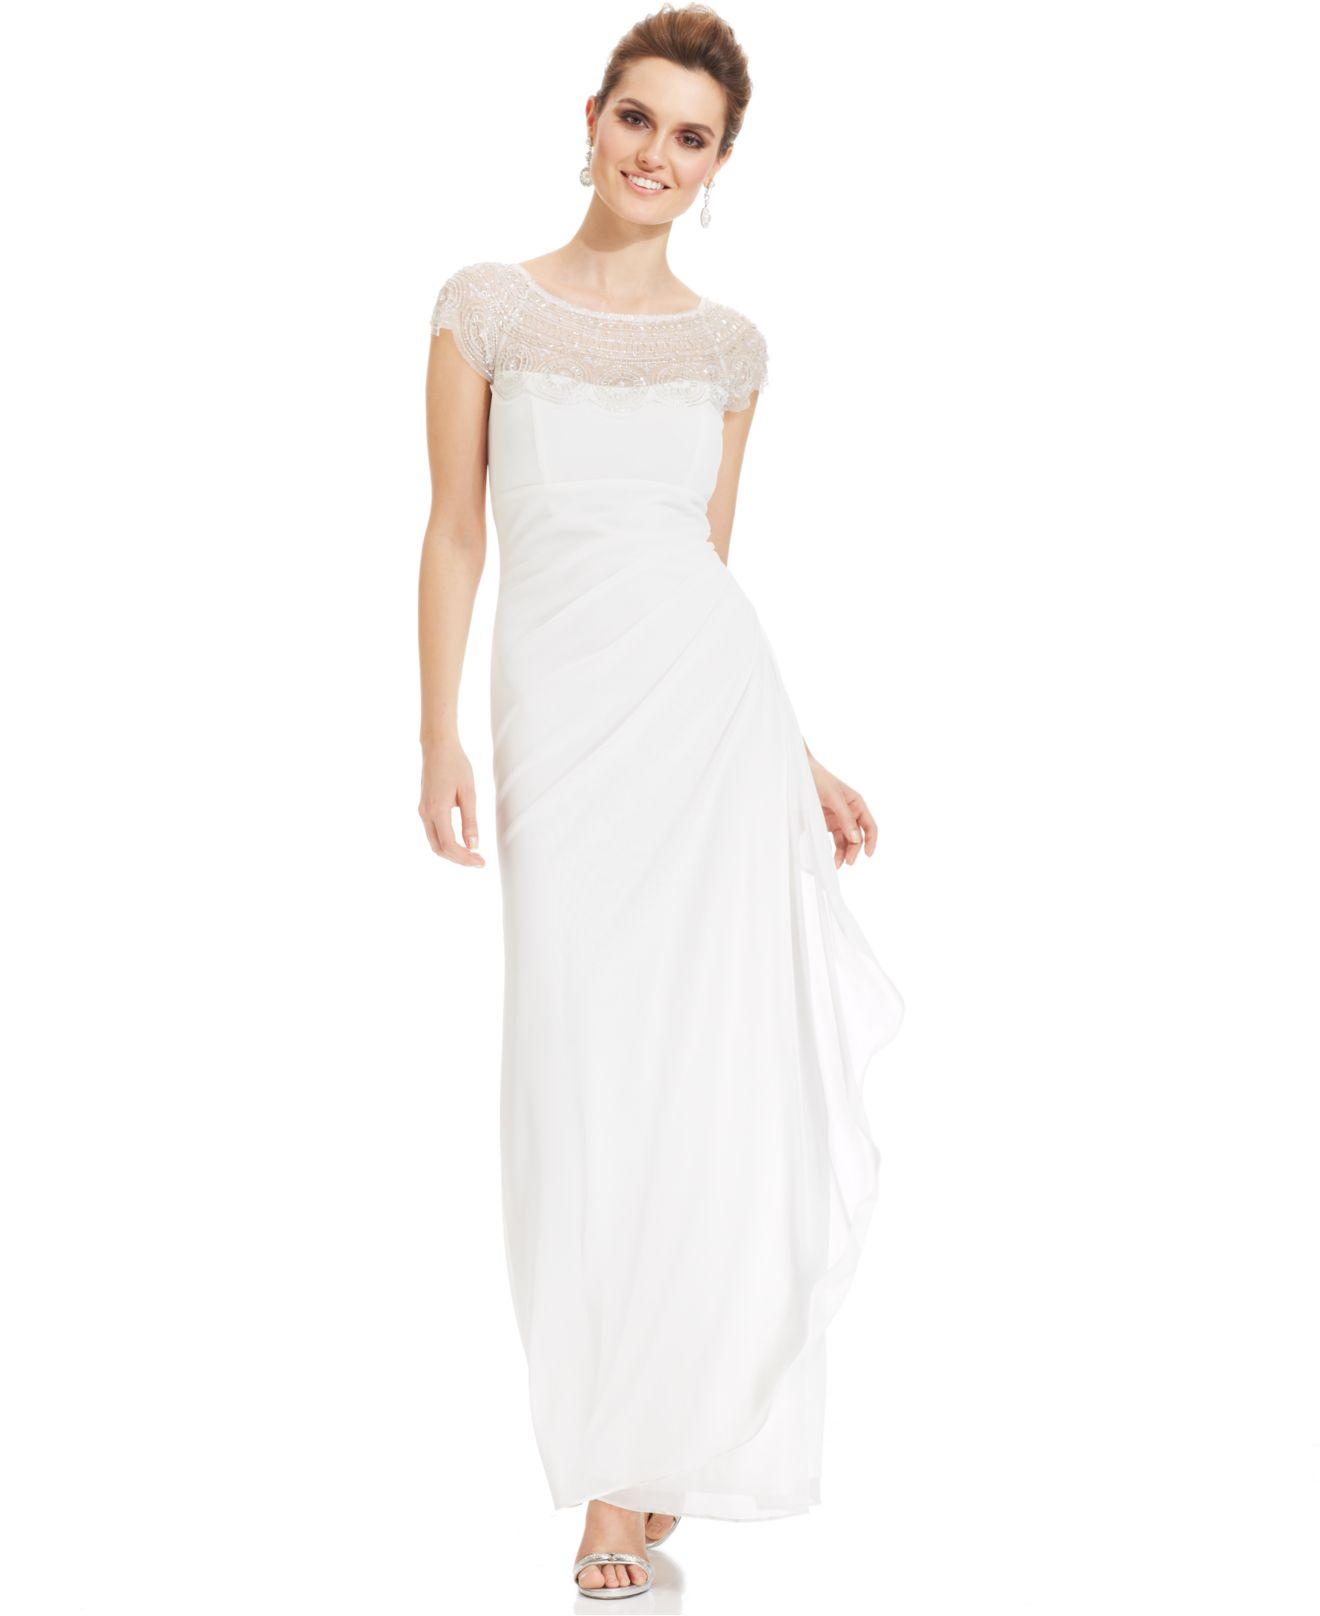 Lyst - Xscape Cap-Sleeve Illusion Beaded Gown in White